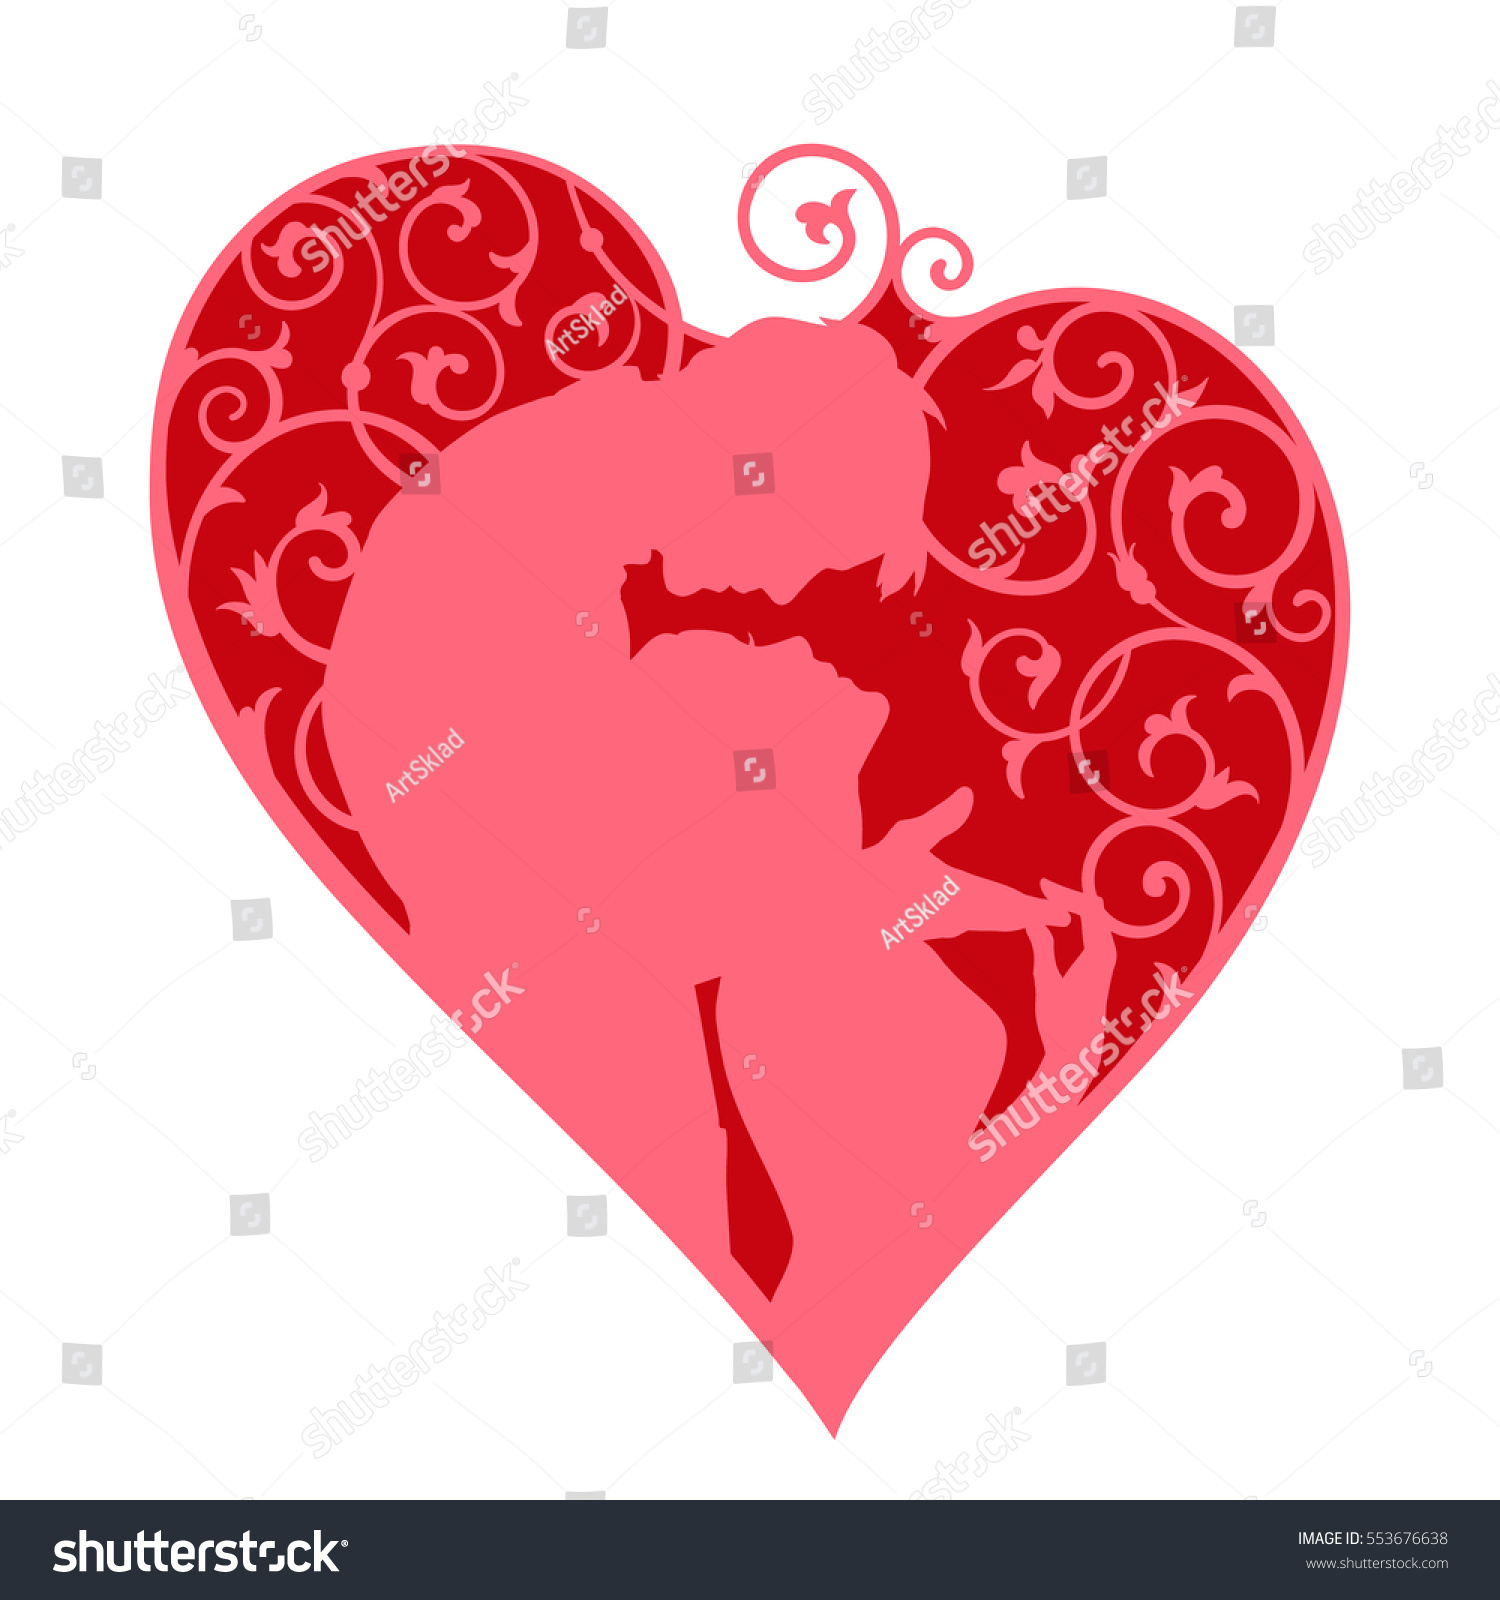 Loving Couple Inside Decorative Heart Swirls Stock Vector (Royalty ...